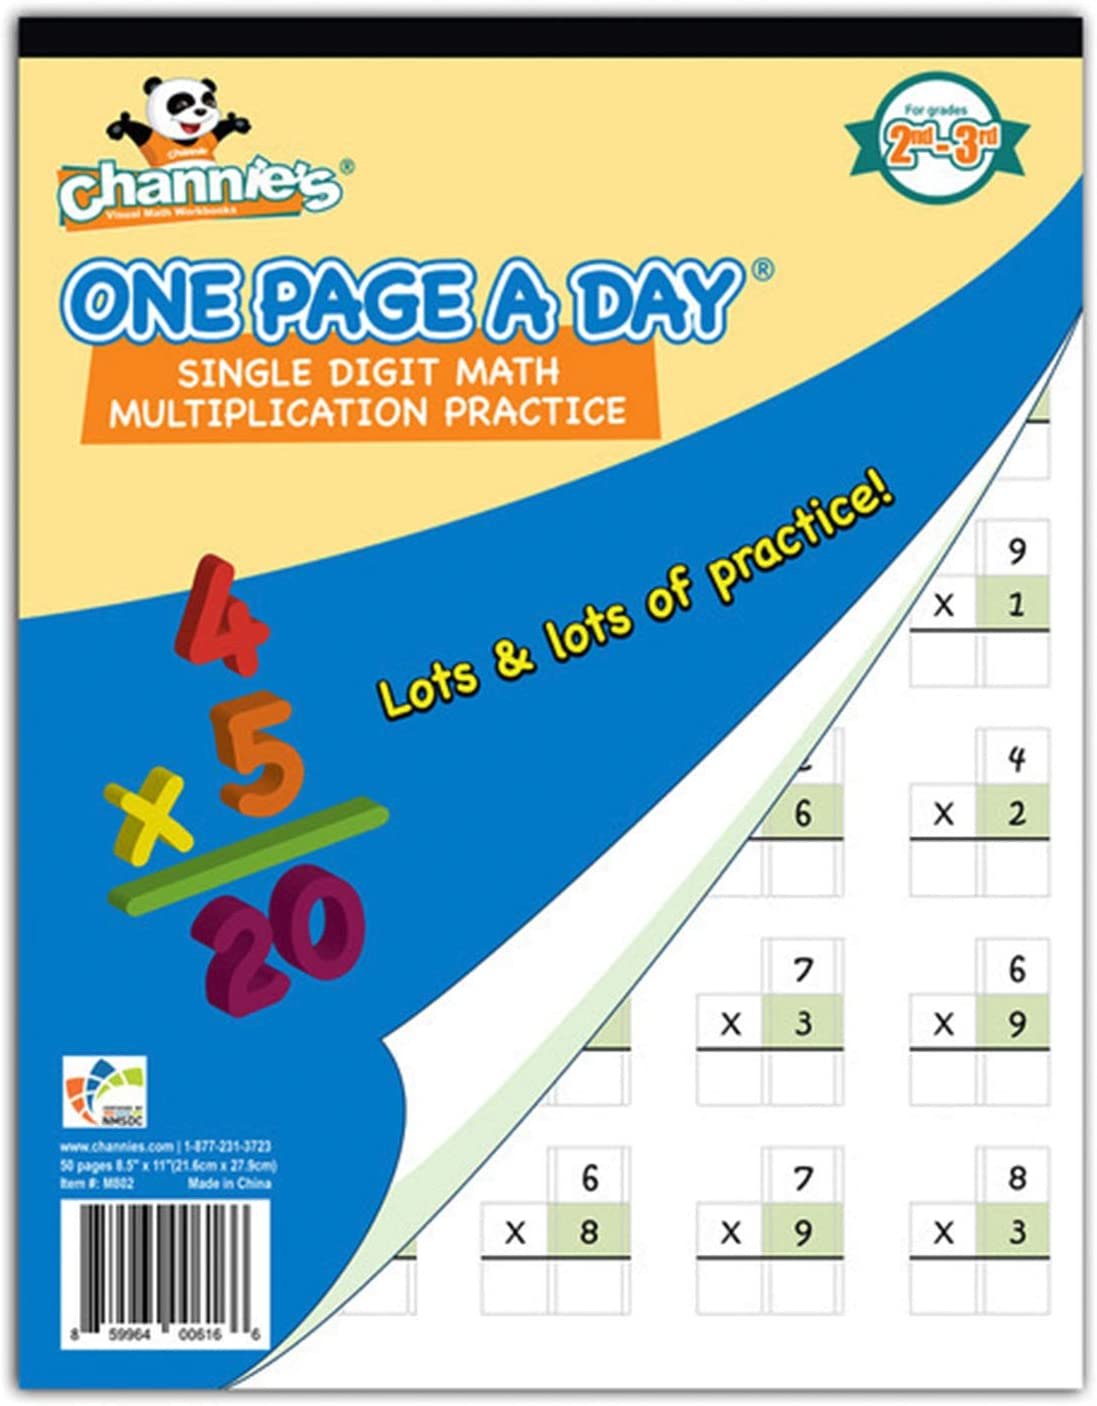 Channie's One Weekly update Page A Day Single Digit Multiplication Beginner Max 48% OFF